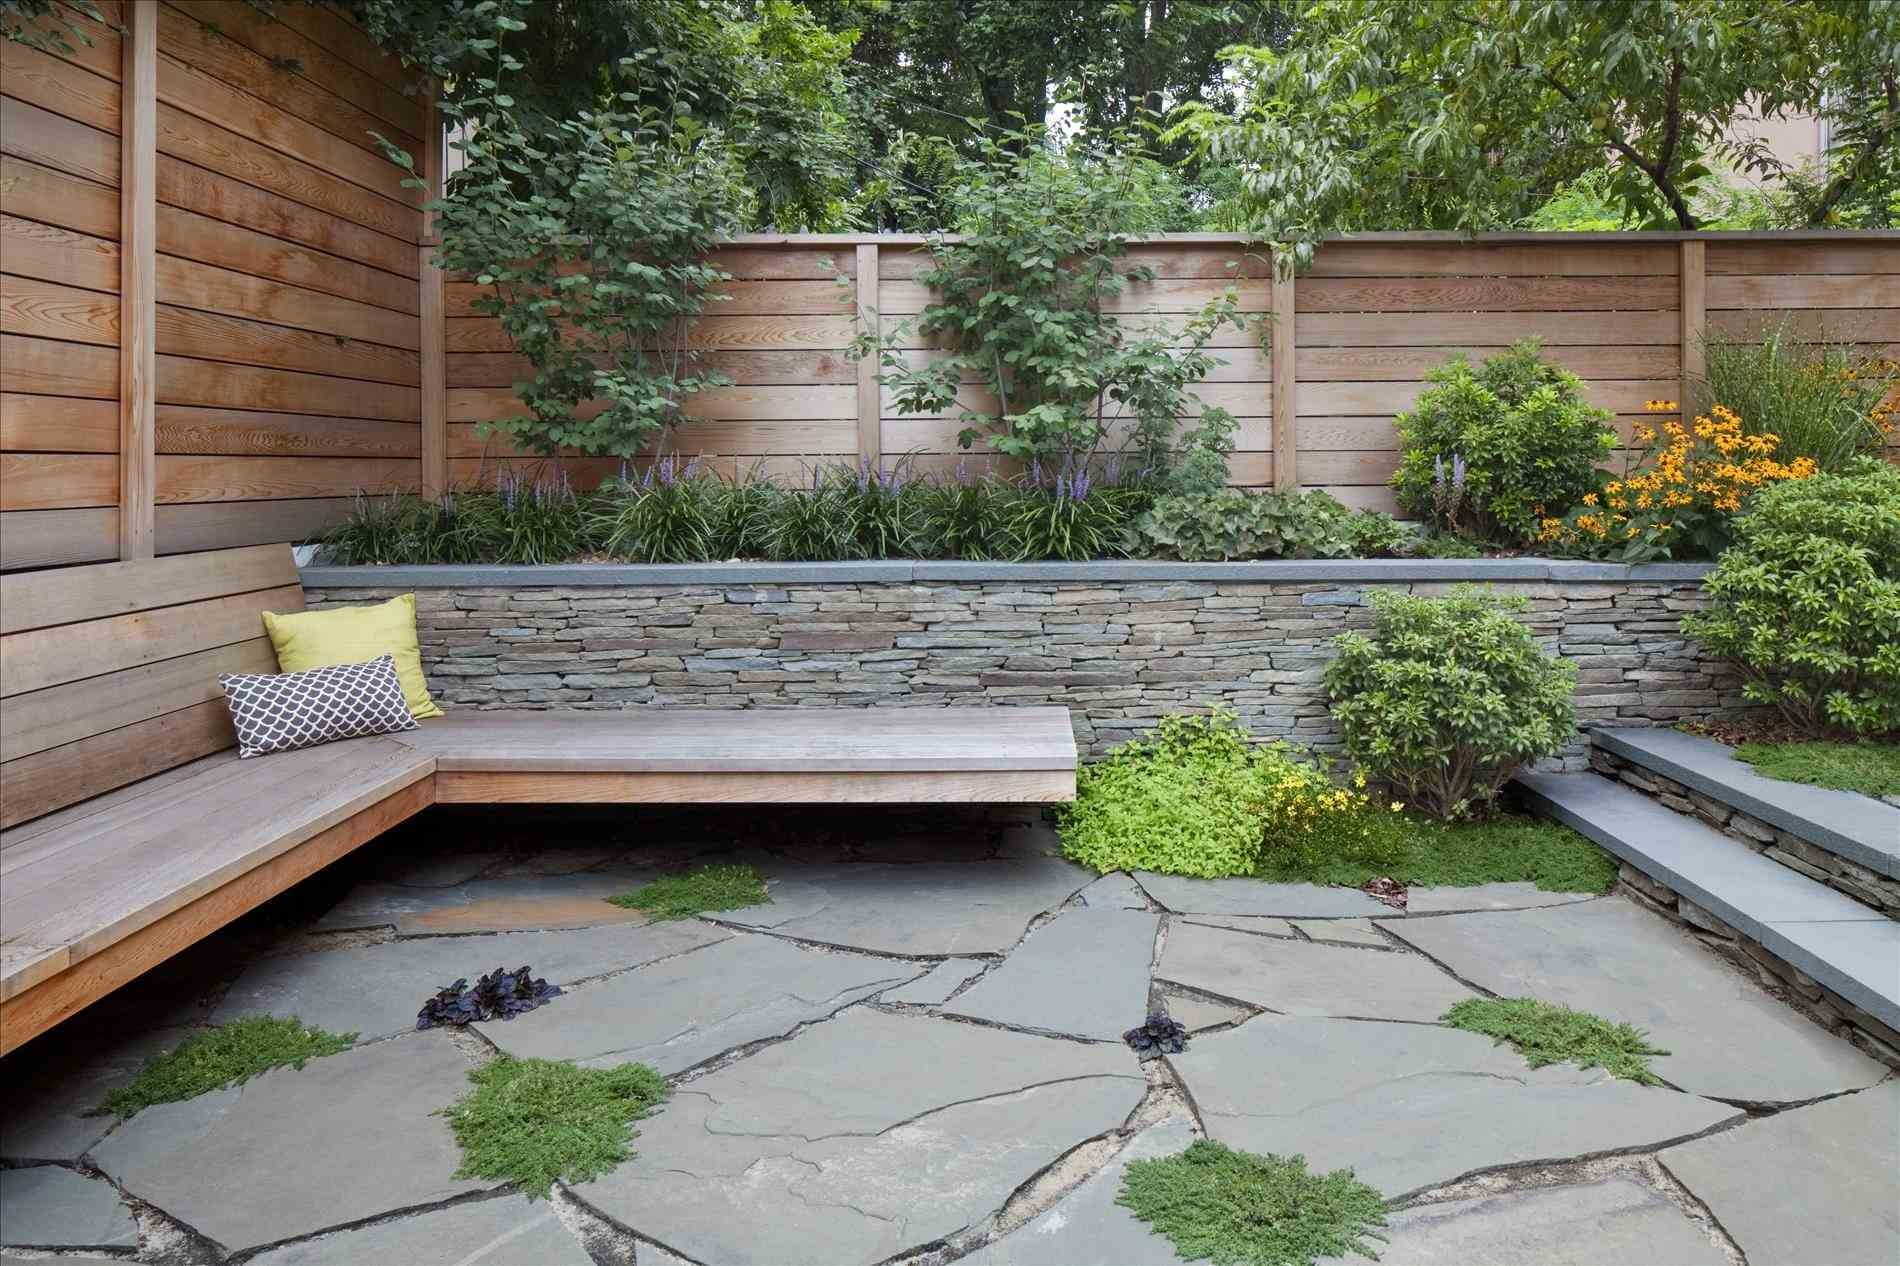 Nyc Backyard Ideas Jeemainco throughout Nyc Backyard Ideas